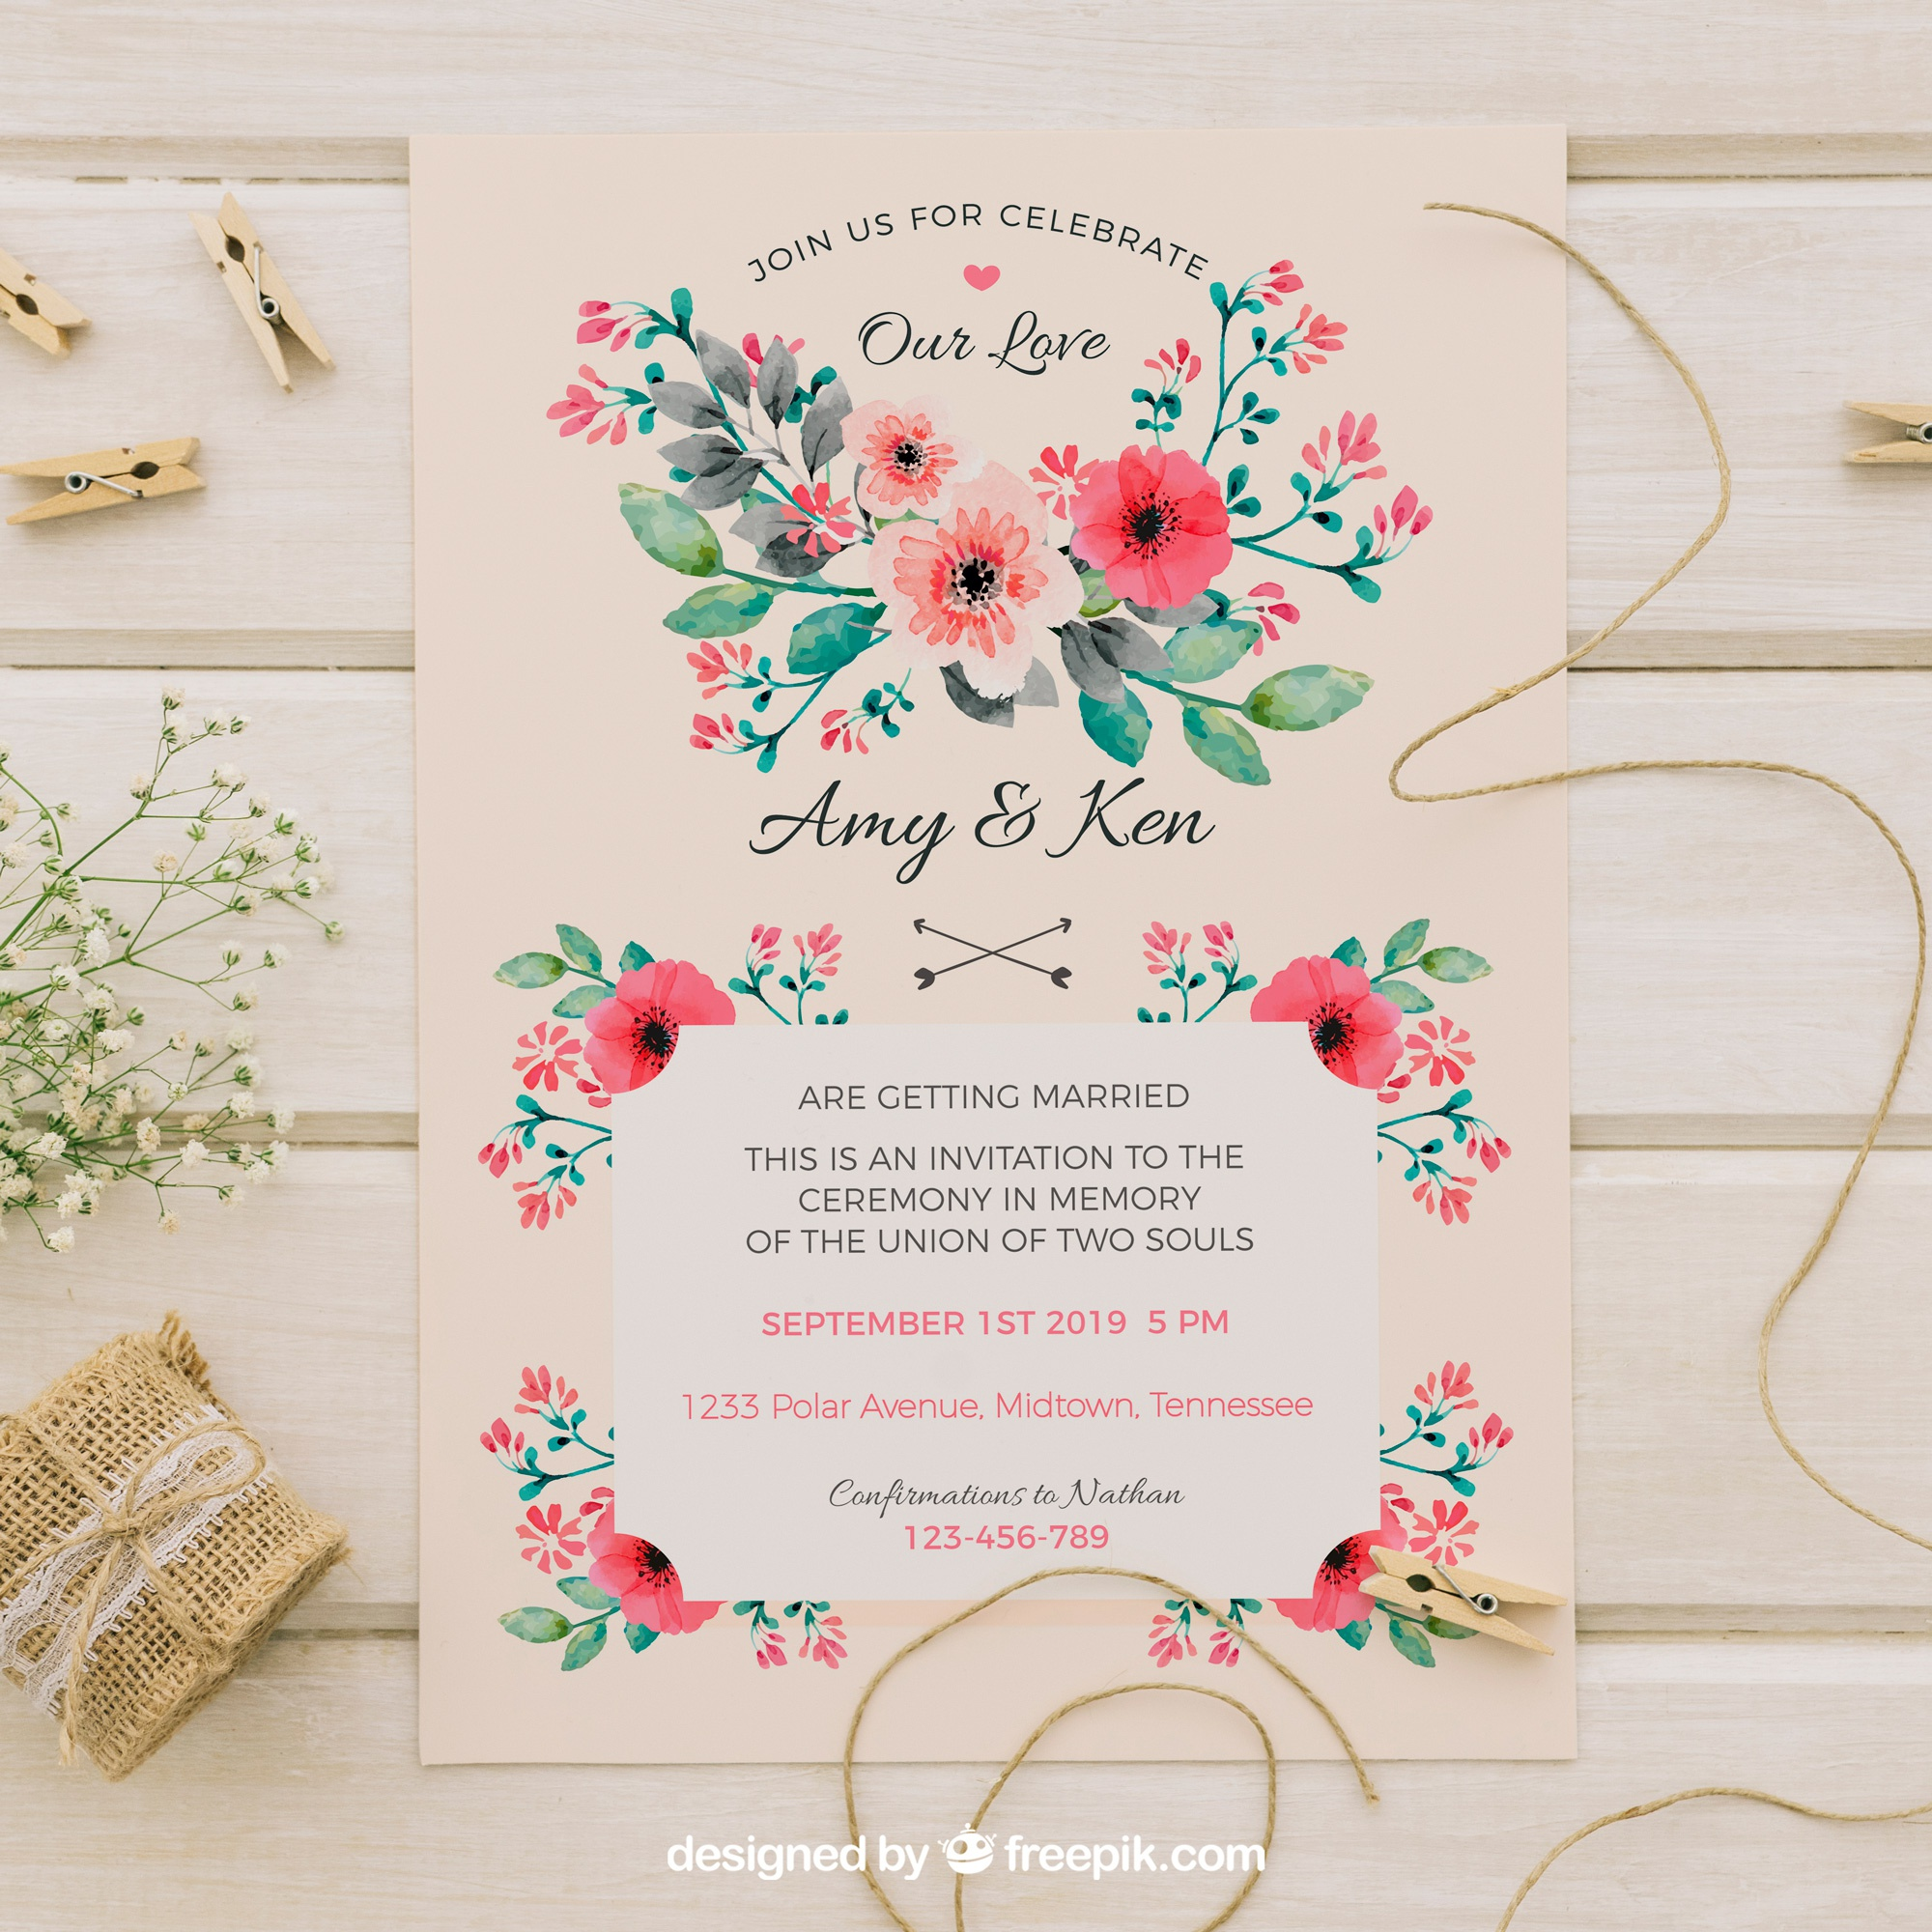 Vintage wedding invitation with watercolor flowers